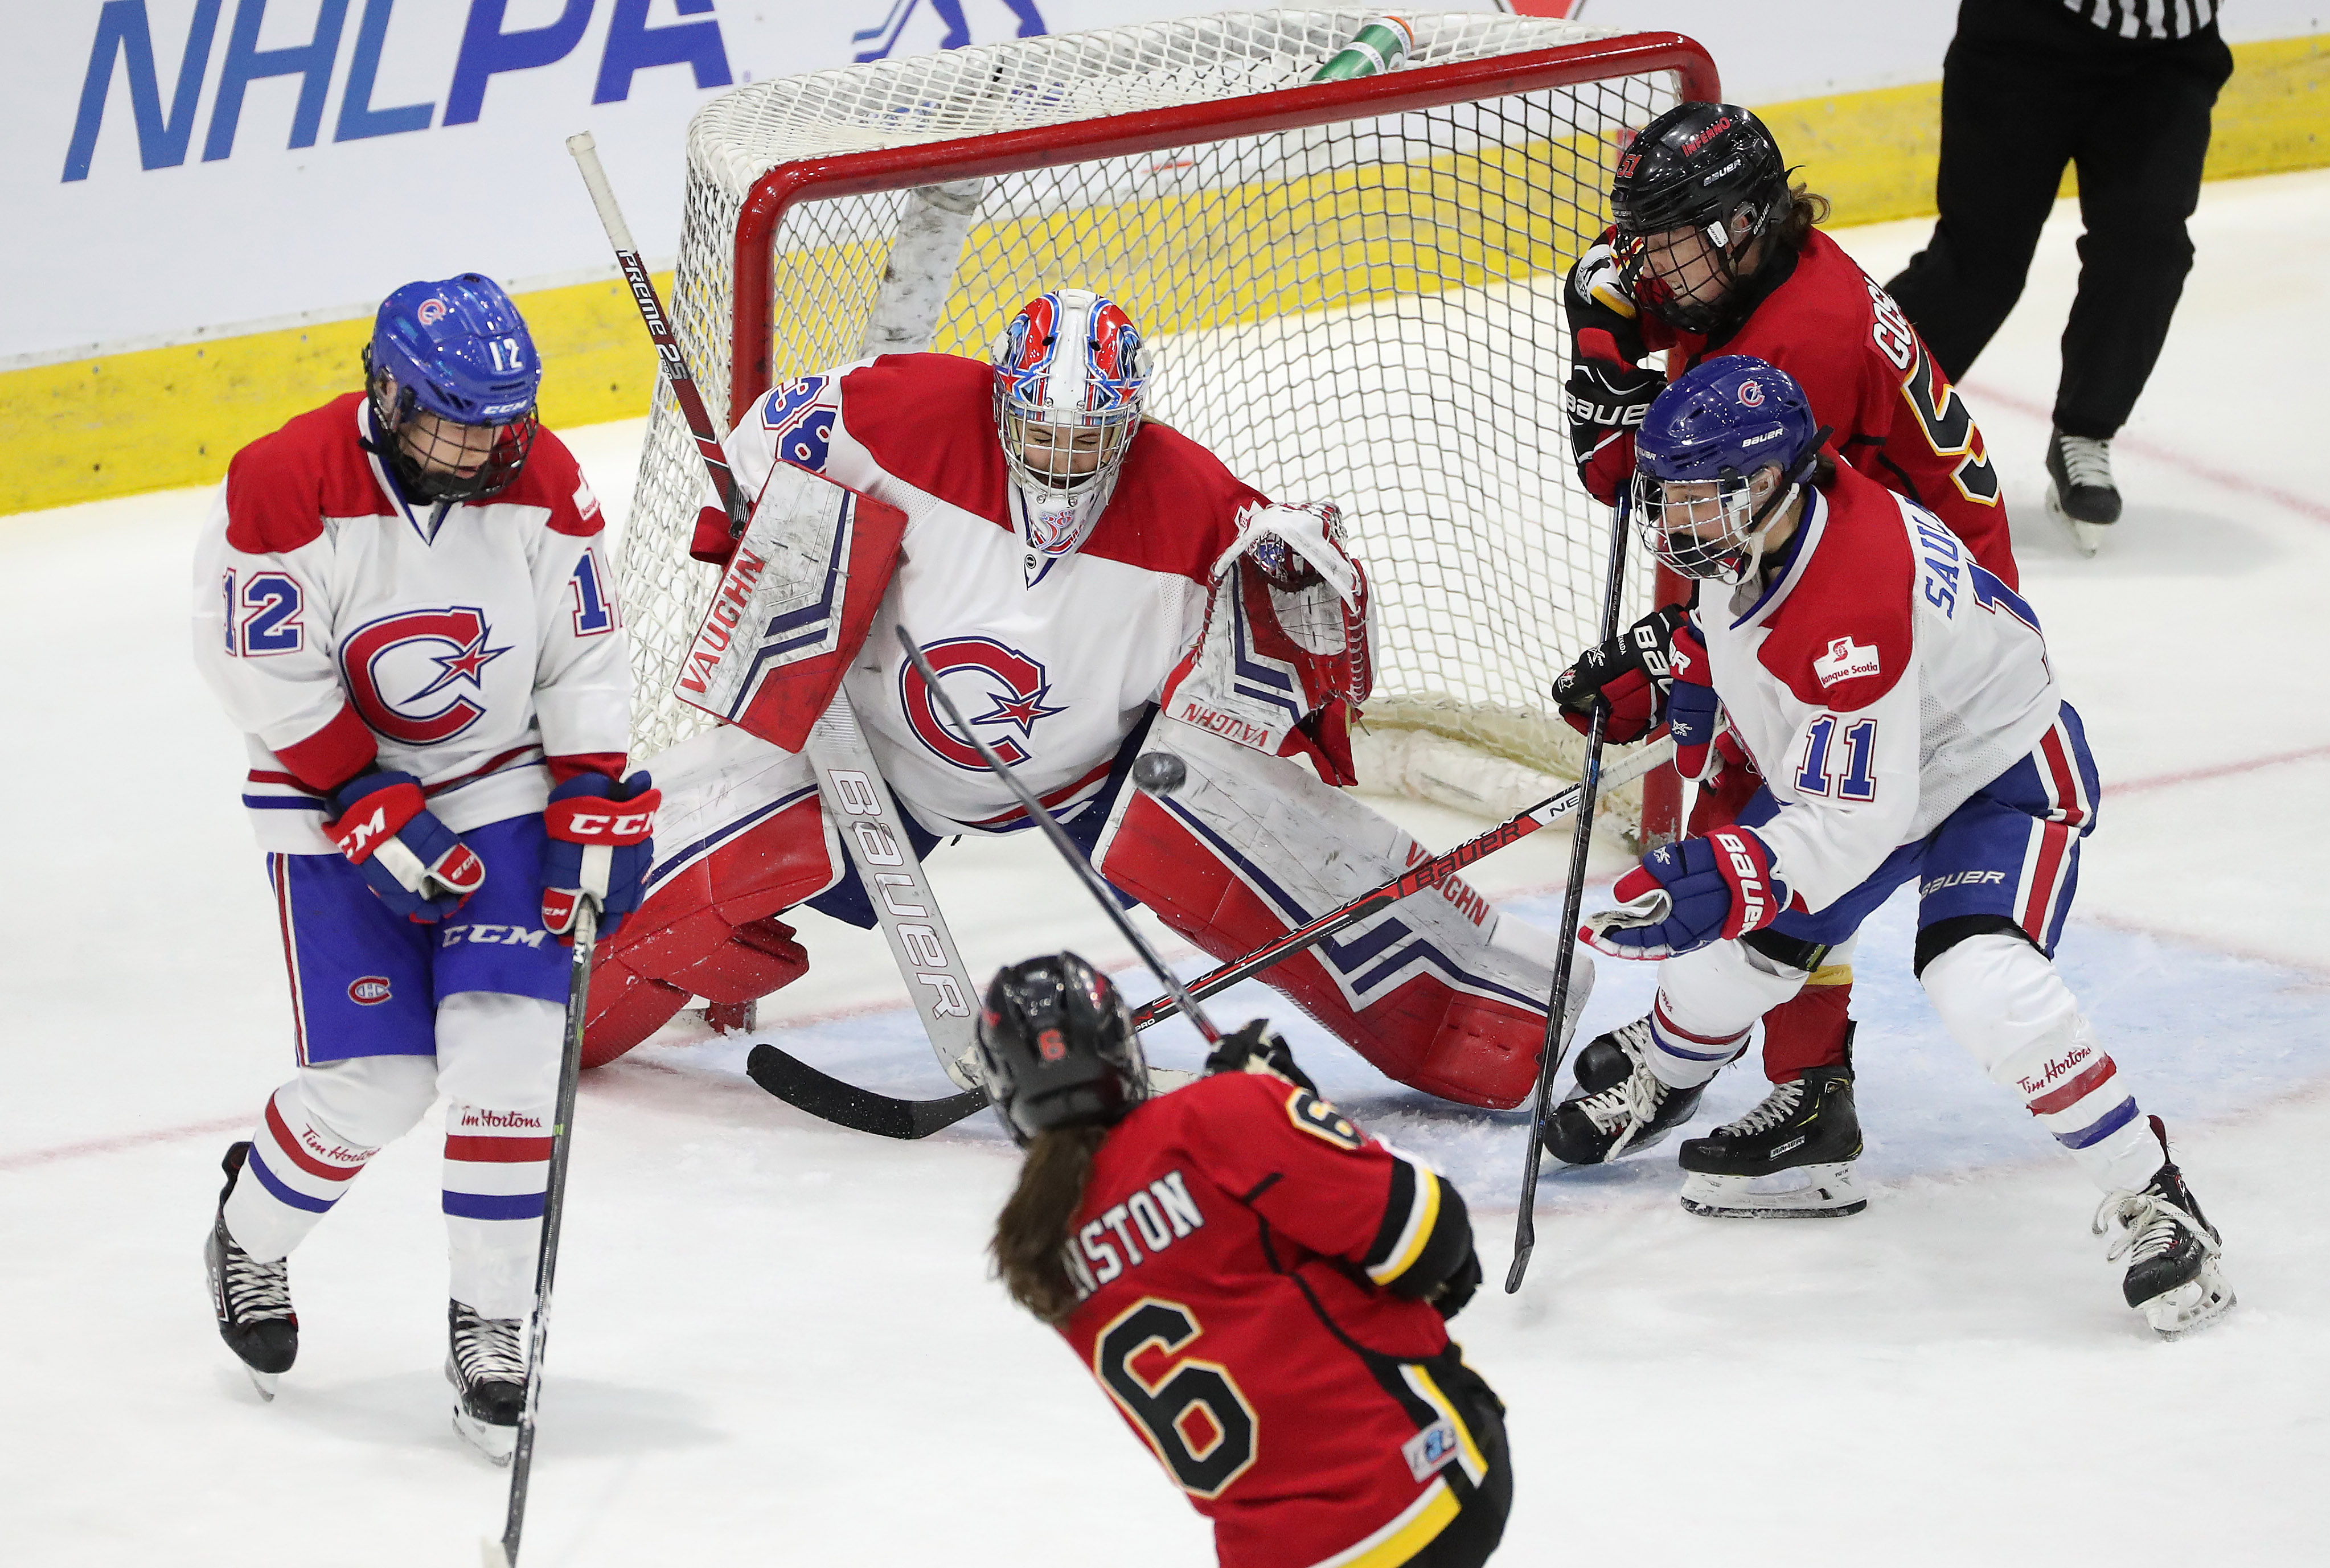 The Canadian Women's Hockey League's Clarkson Cup final between Calgary Inferno and Canadiennes de Montreal.